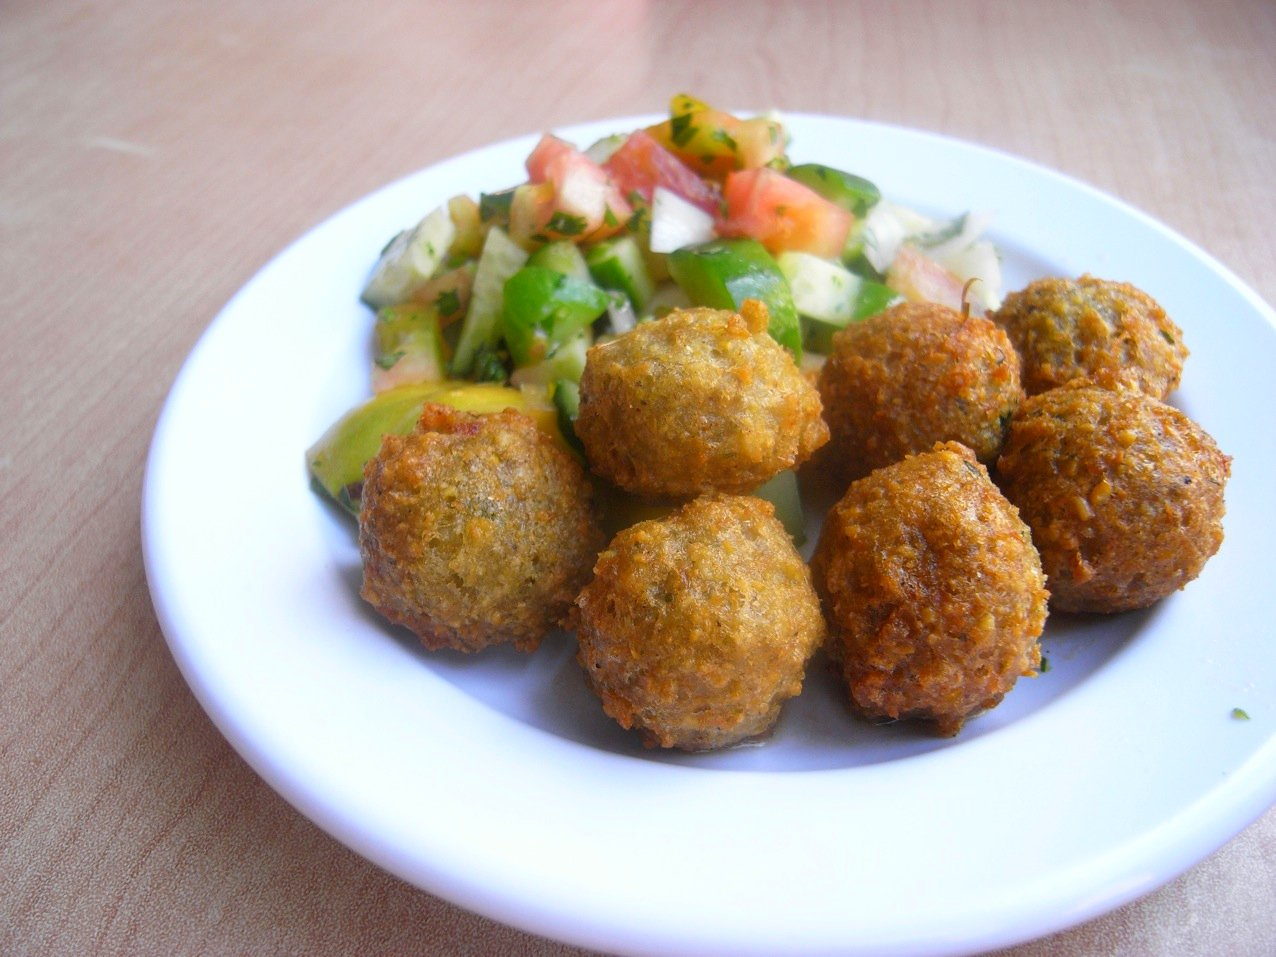 Falafel | © momo/Flickr